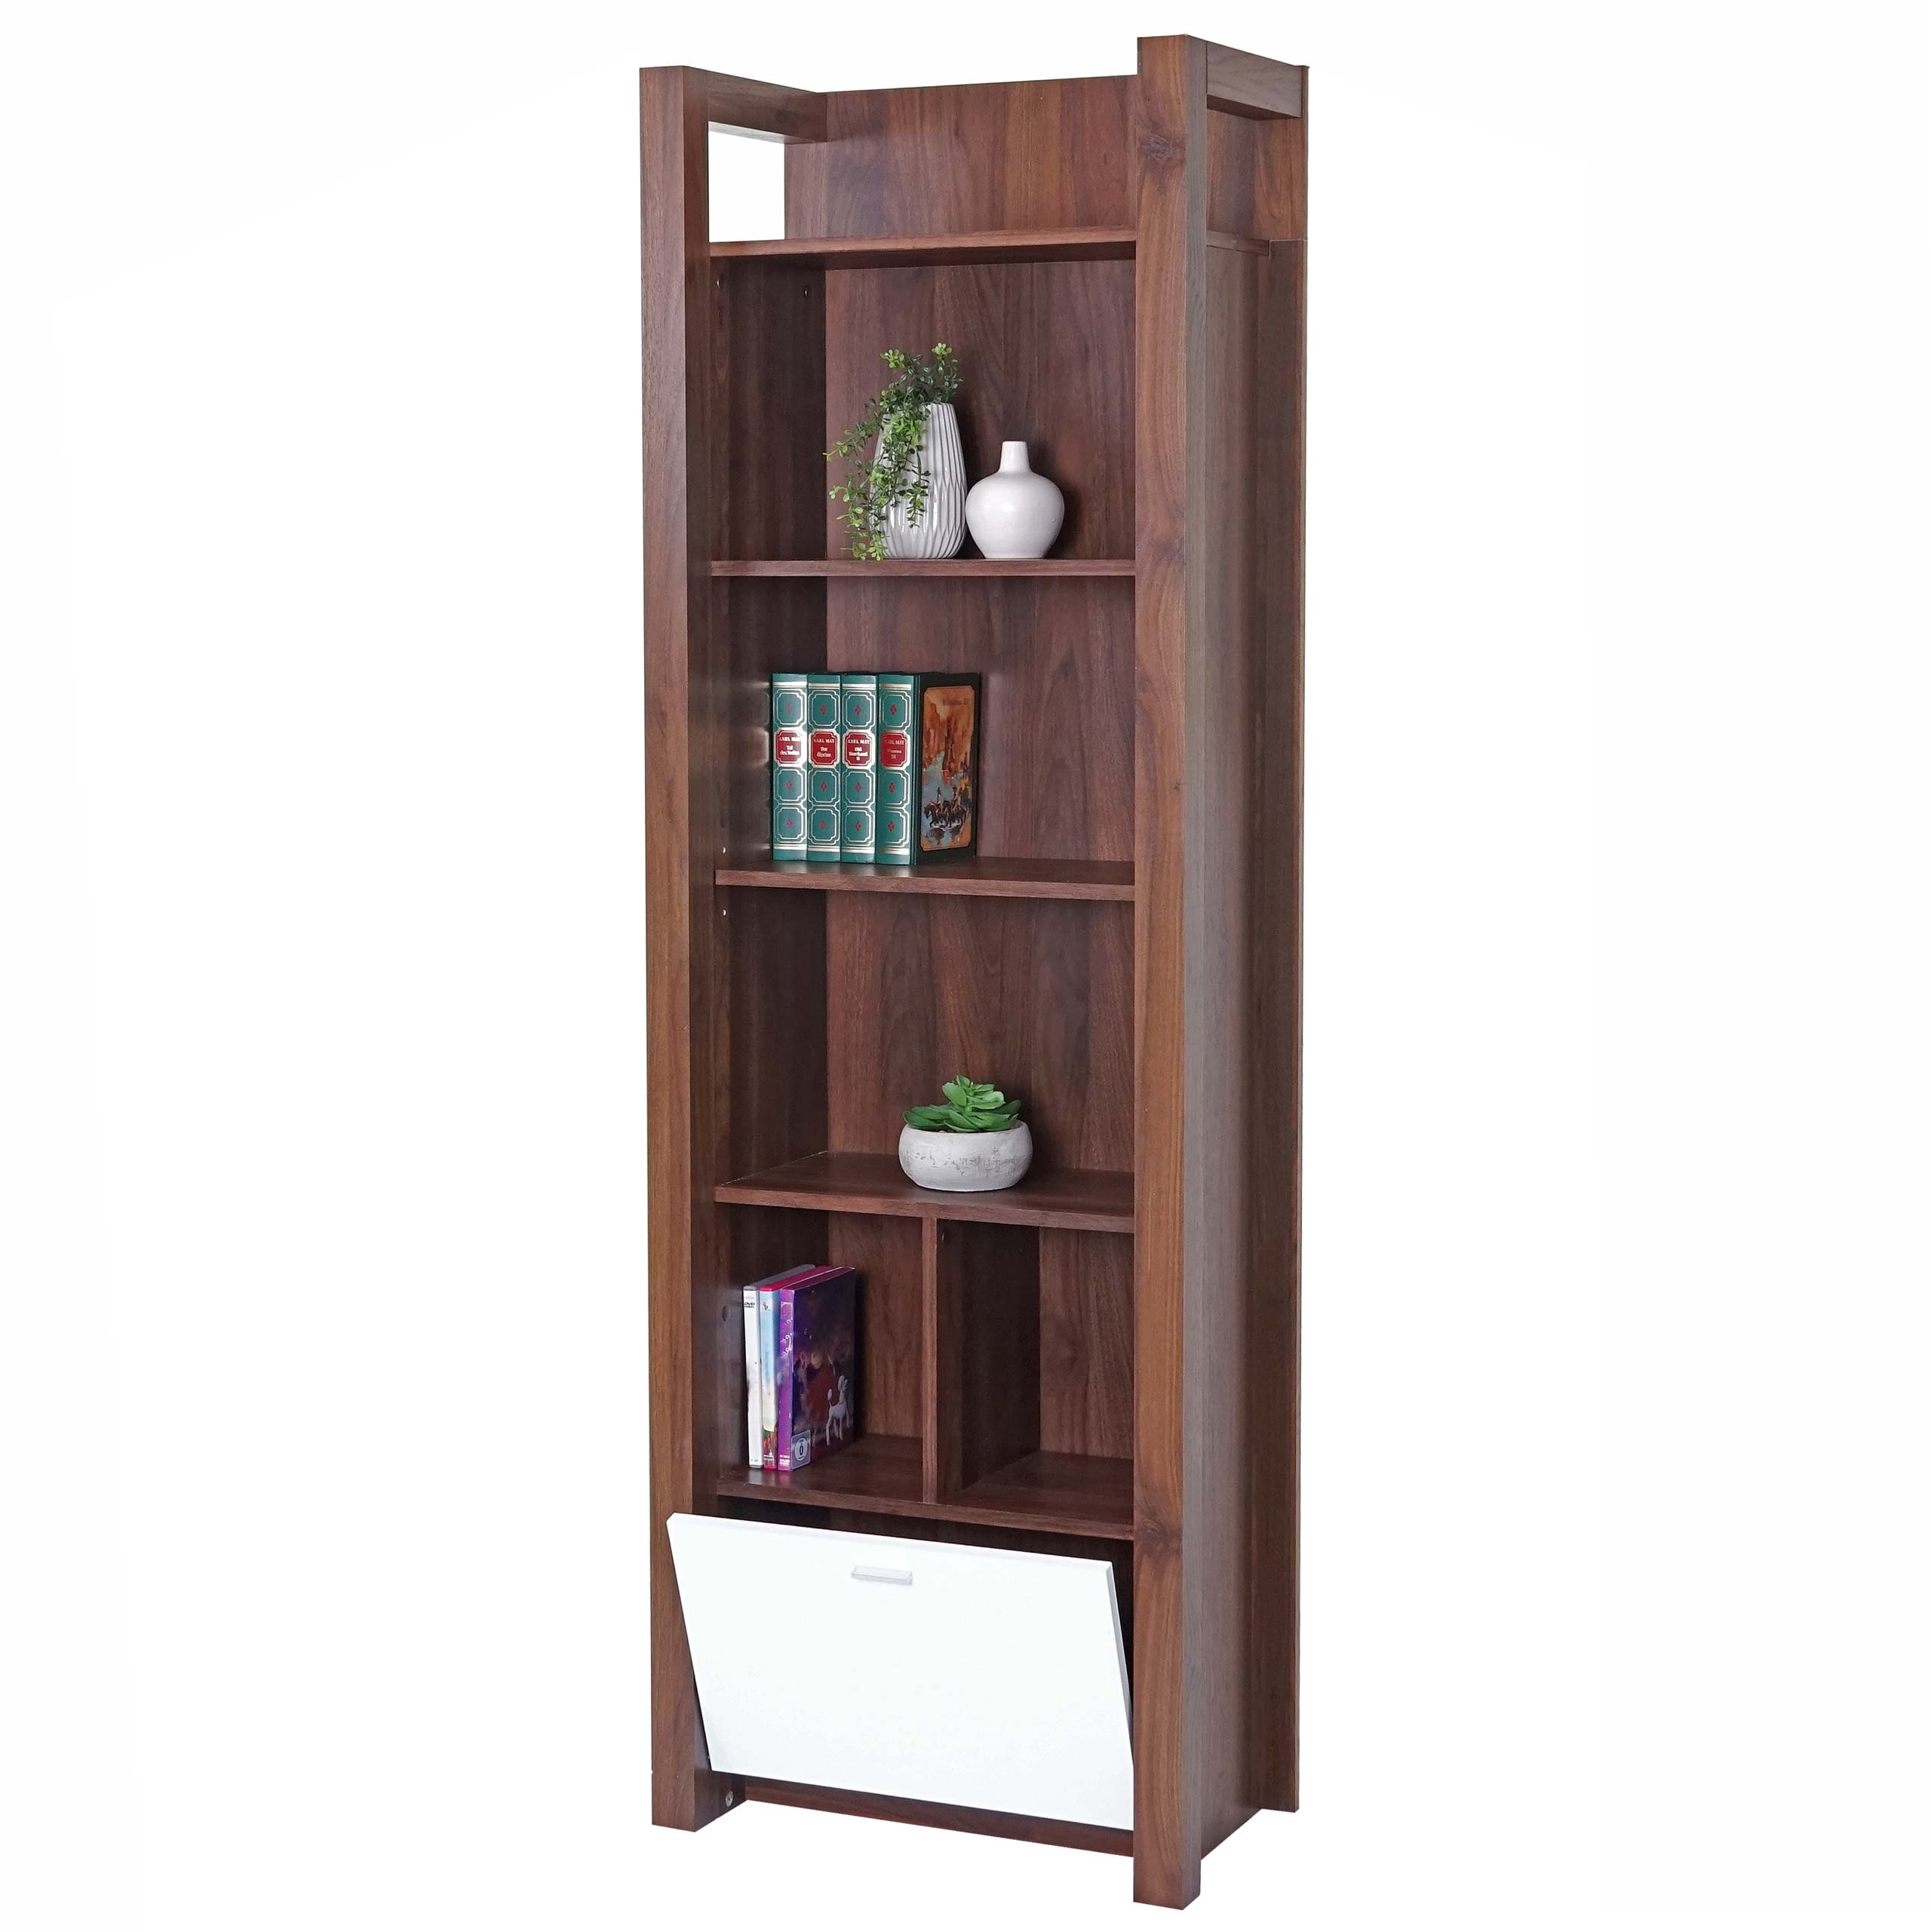 Regal Hwc B51 Standregal Bücherregal Medienregal 3d Struktur Walnuss Optik Hochglanz 180x58x33cm